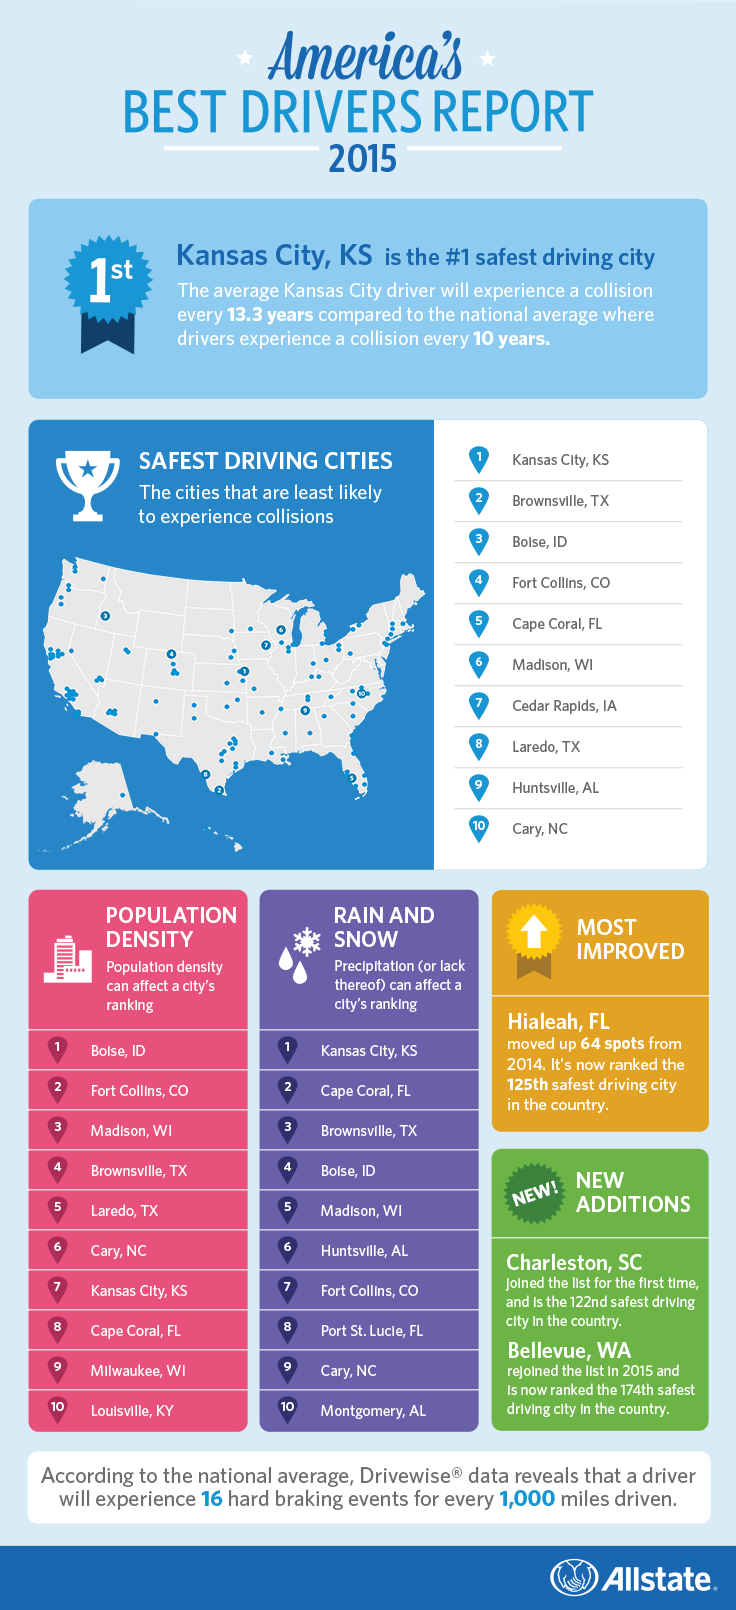 Allstate's America's Best Drivers Report 2015